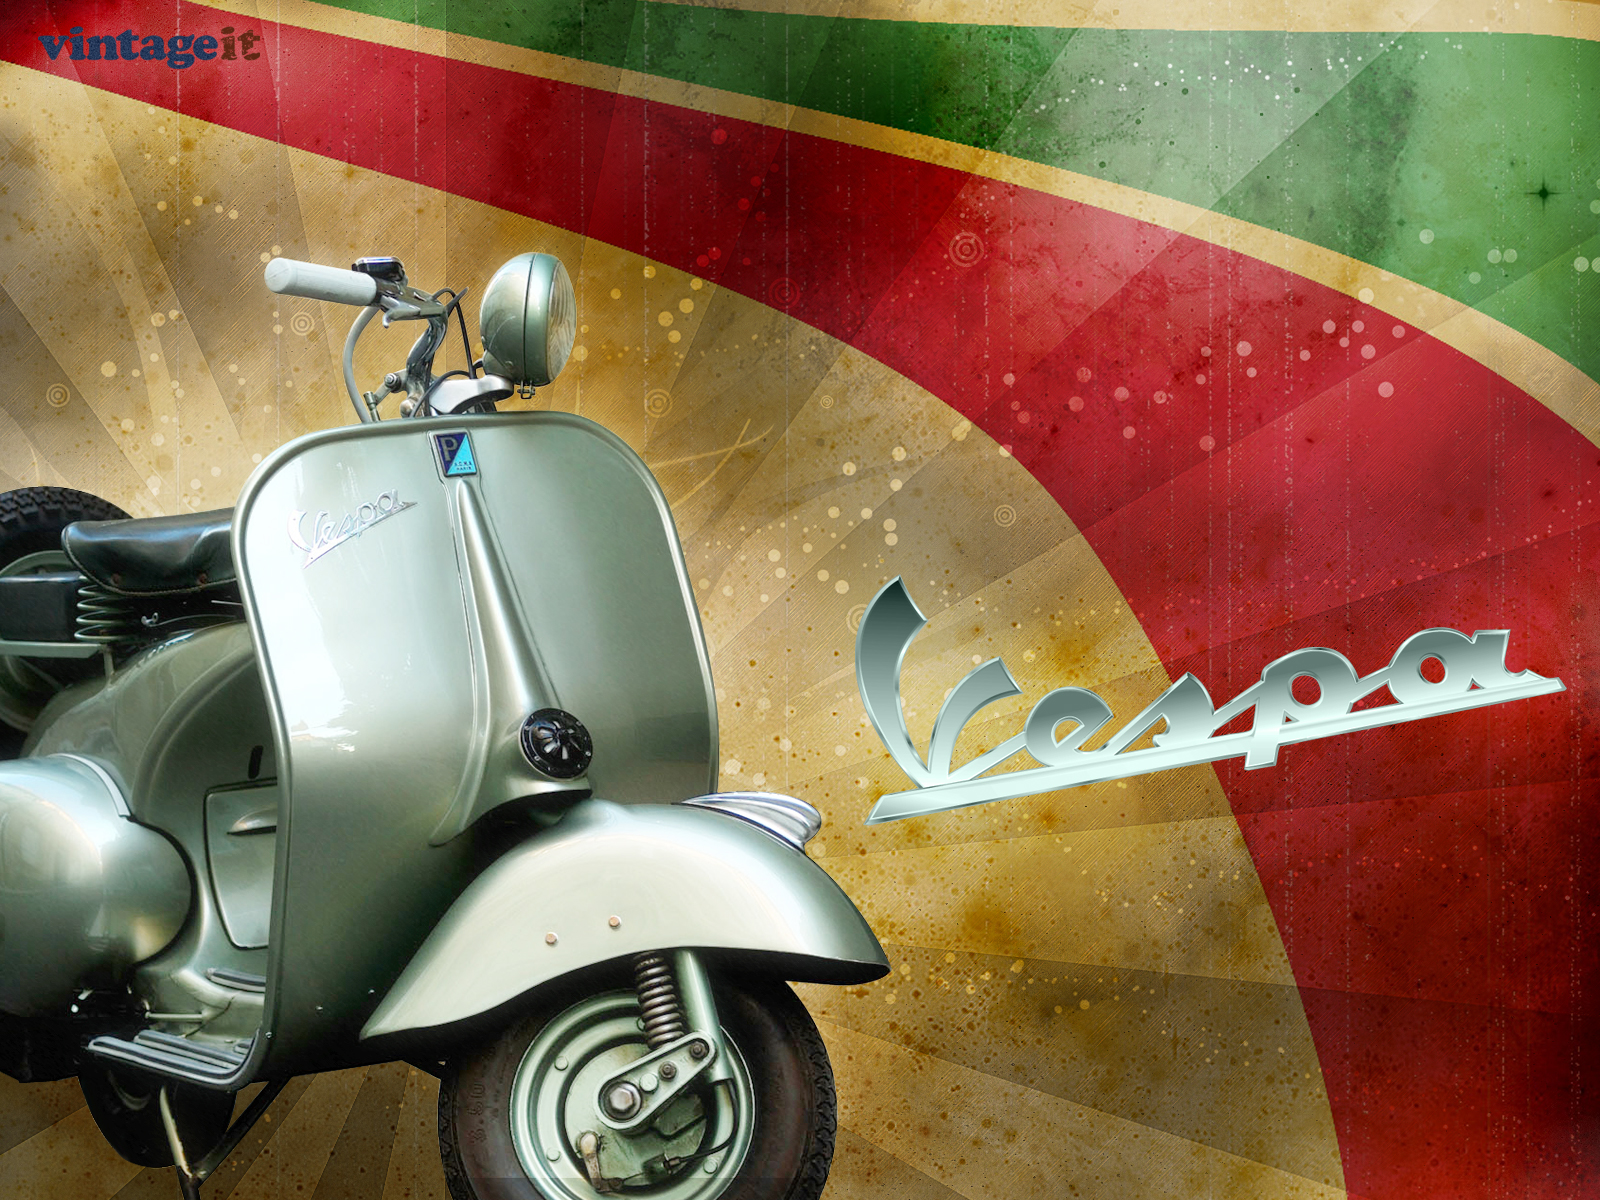 Vespa Vintage Wallpaper wallpapers and images   wallpapers pictures 1600x1200